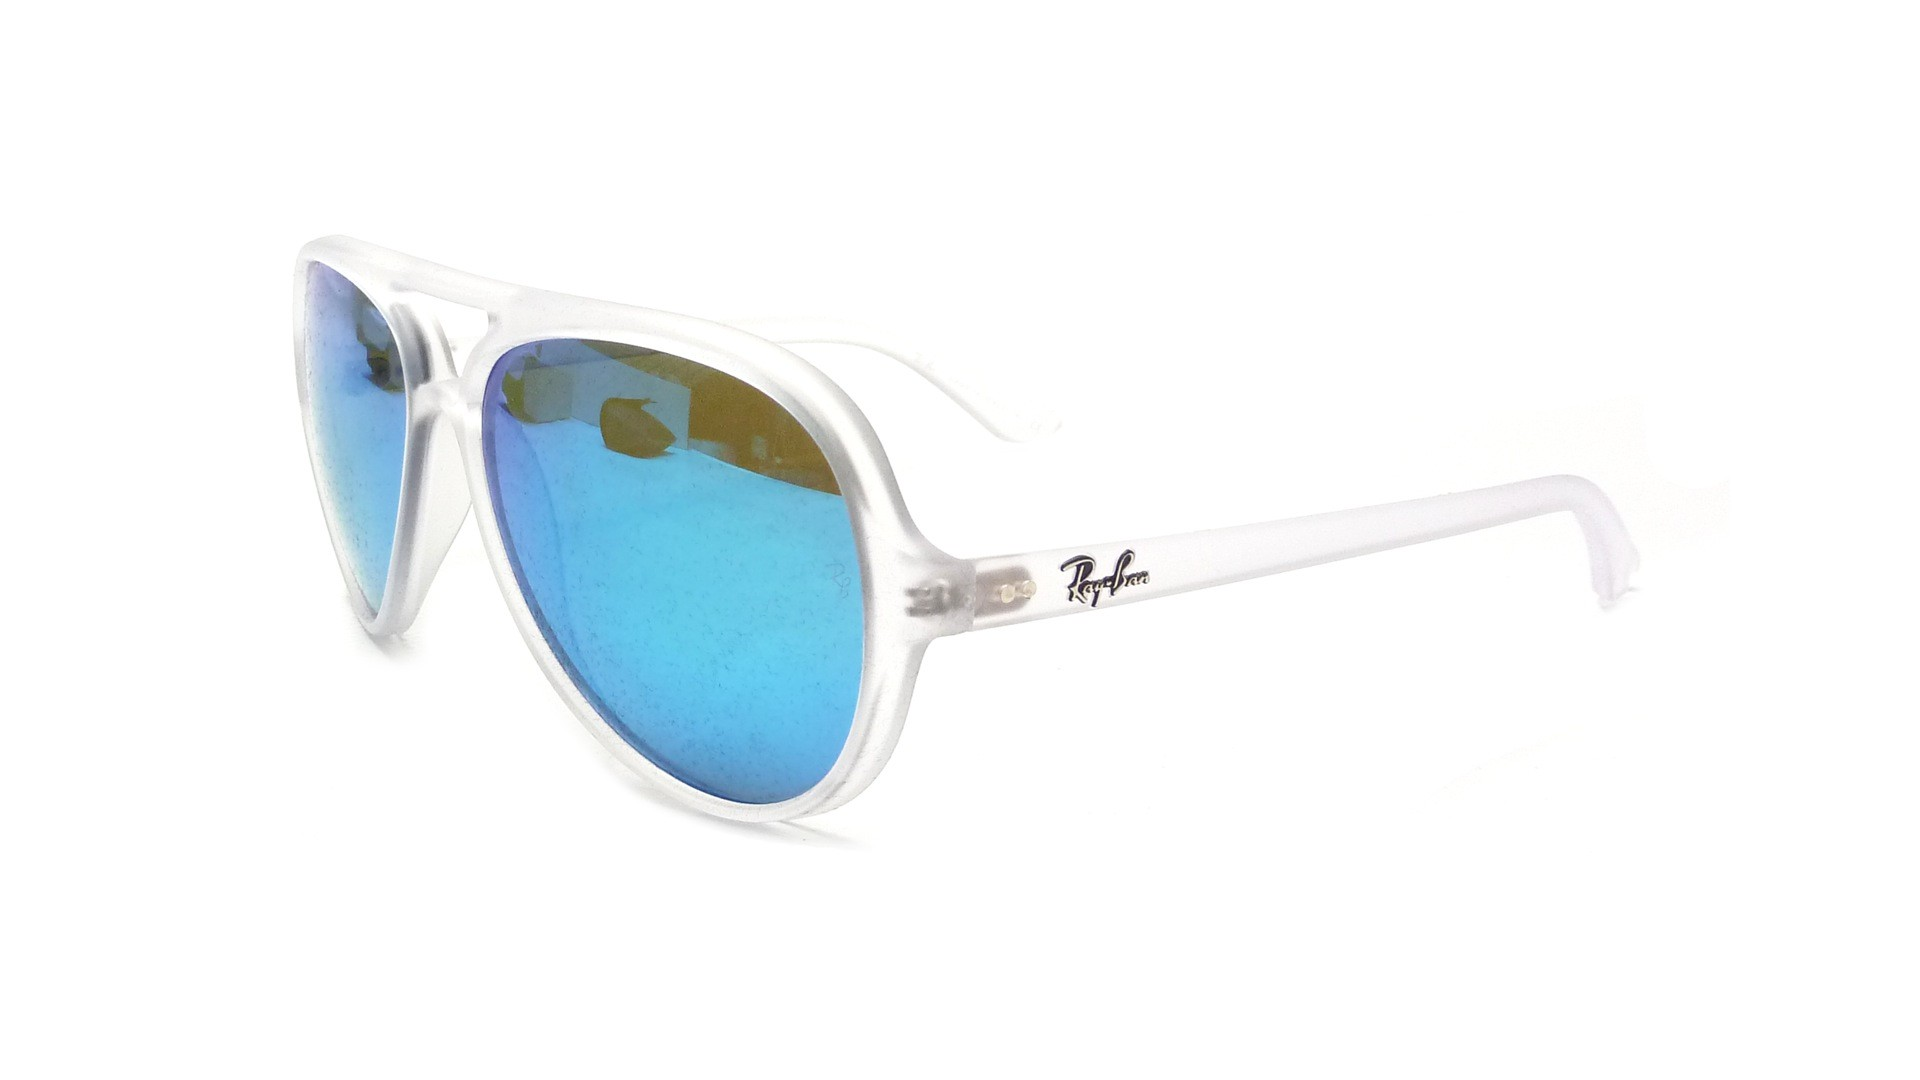 55212f6e41 Ray Ban Cats 5000 Blue Flash Ray Bans « Heritage Malta